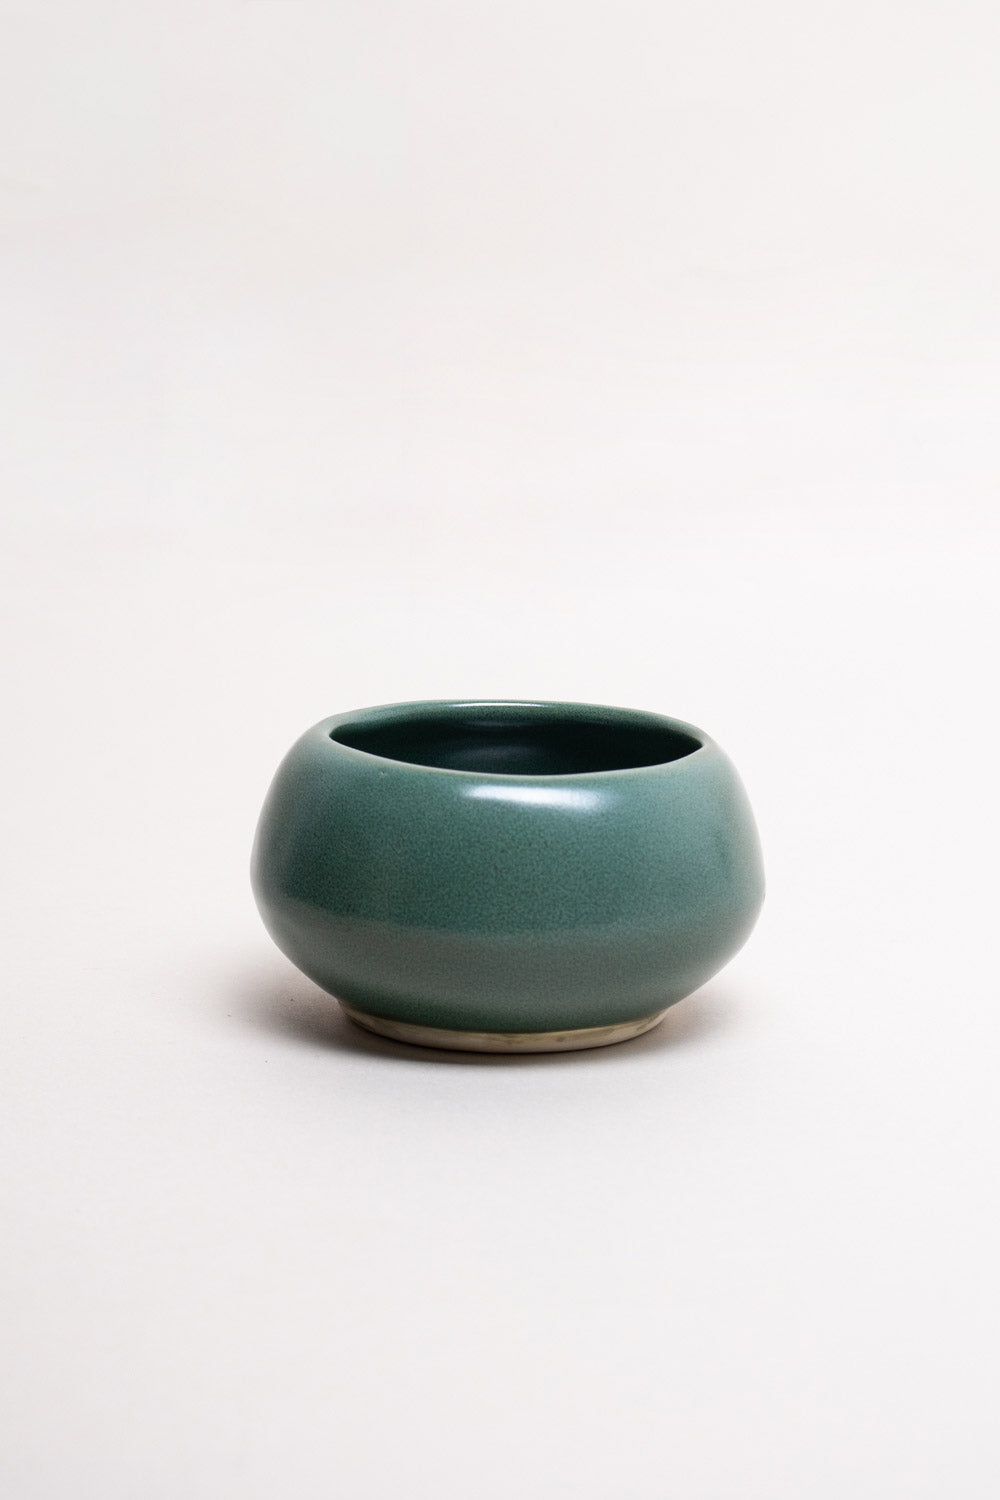 Nara Small Bowl in Fern